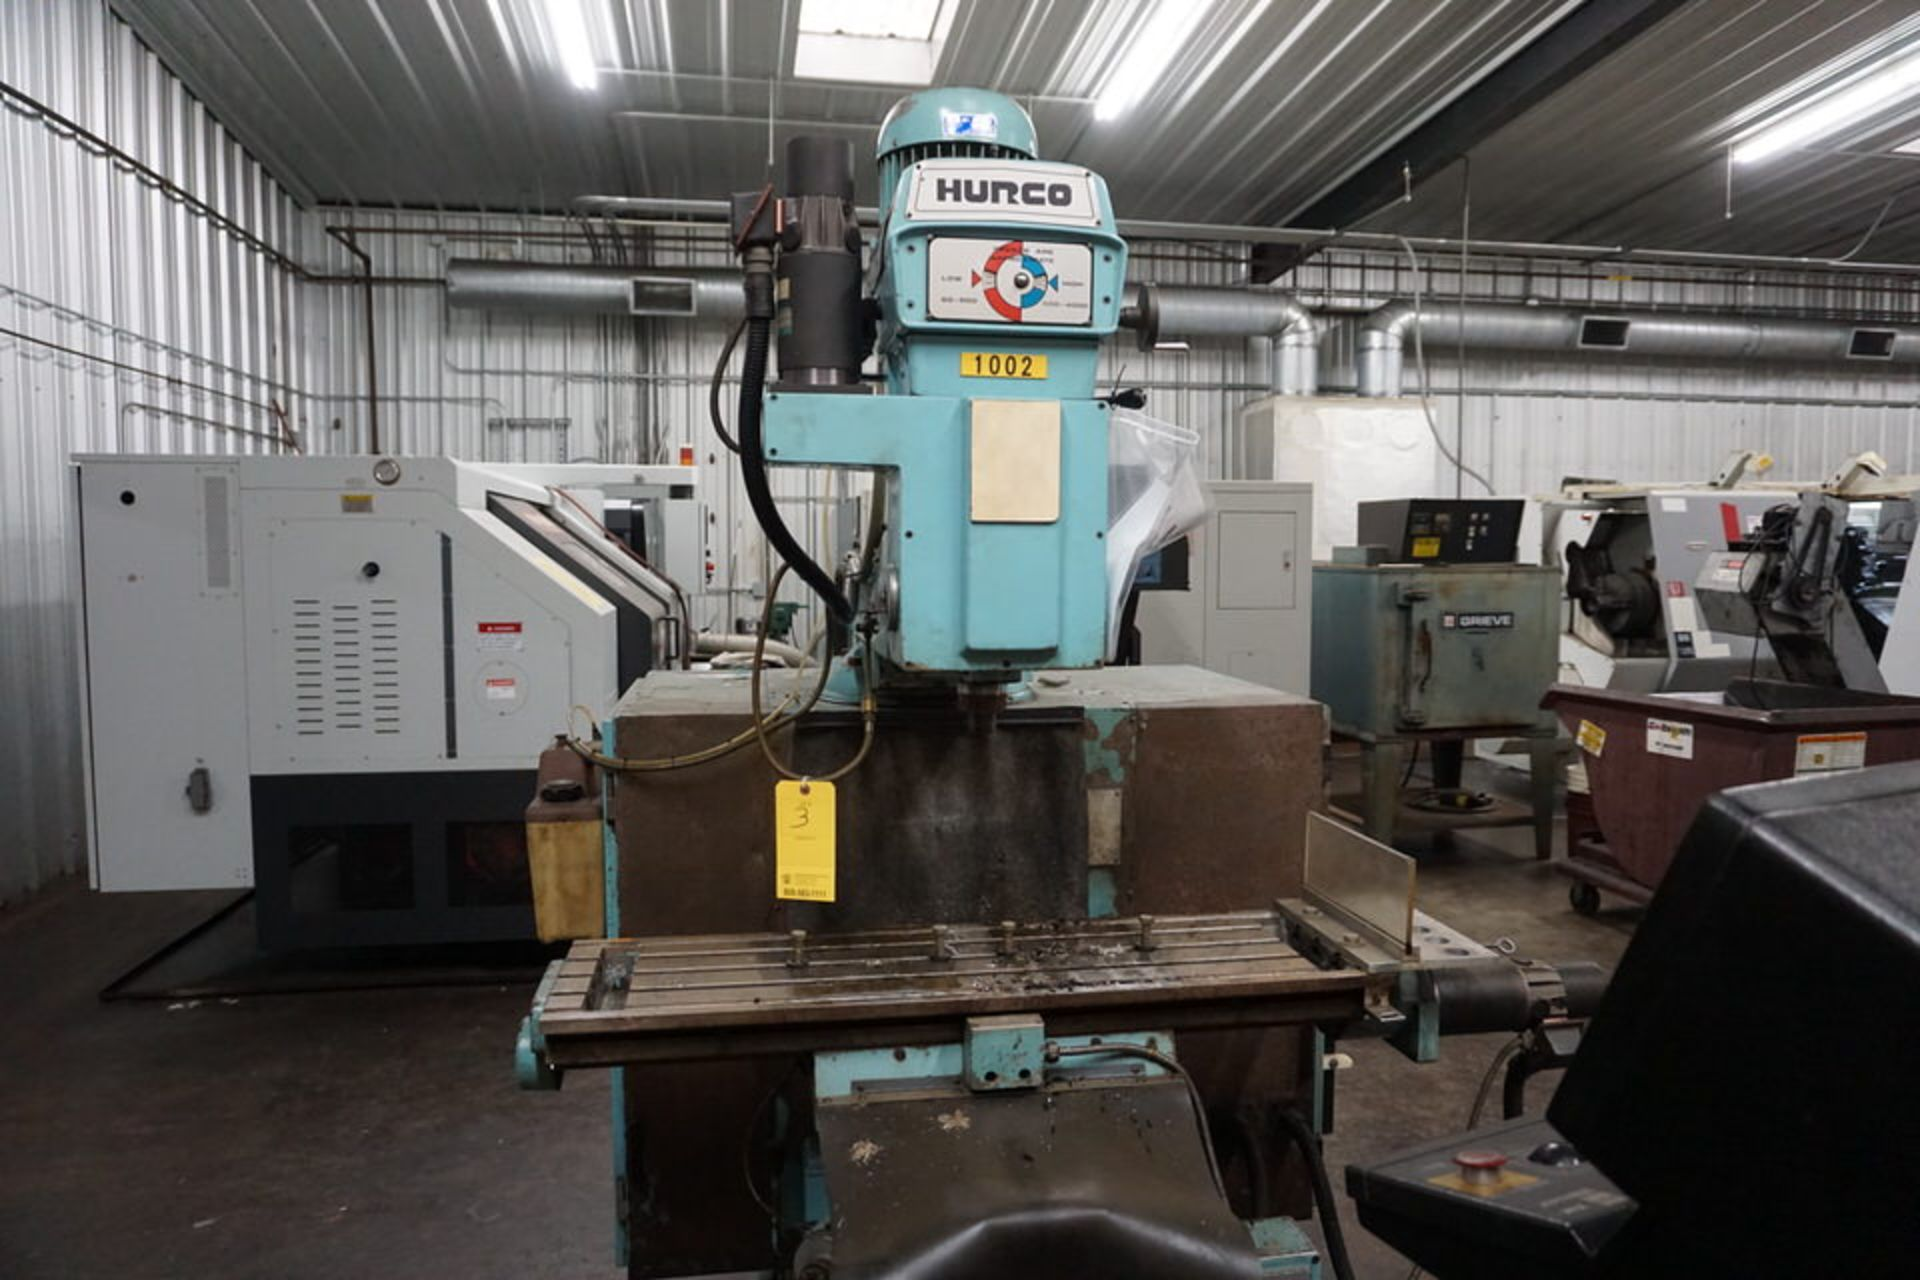 HURCO VERTICAL MILLING MACHINE W/ HURCO ULTIMAX KM-3 CONTROL - Image 2 of 6